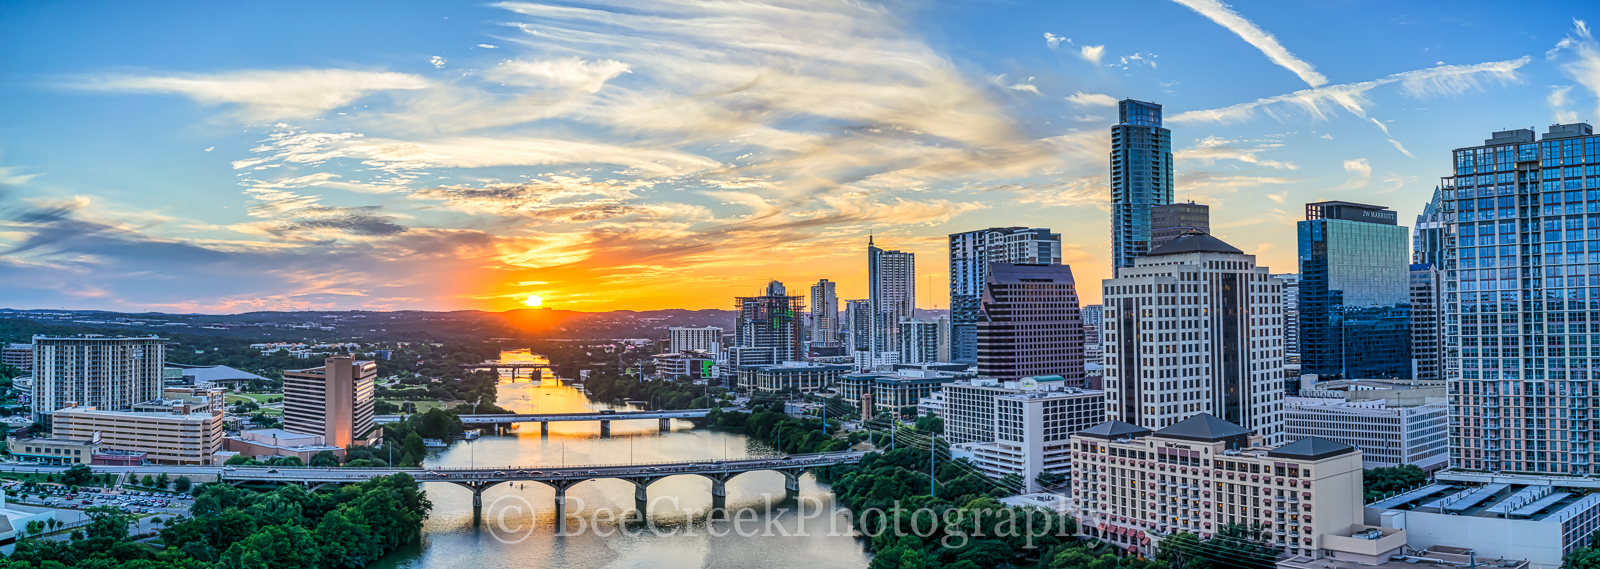 Austin, aerial, cityscape, panorama, pano, downtown, Ladybird Lake, sunset, city, high-rises, waterfront, congress bridge, Lamar Street Bridge, Austonian, 360 Condos, W, Marriott, Four Season, Frost, , photo